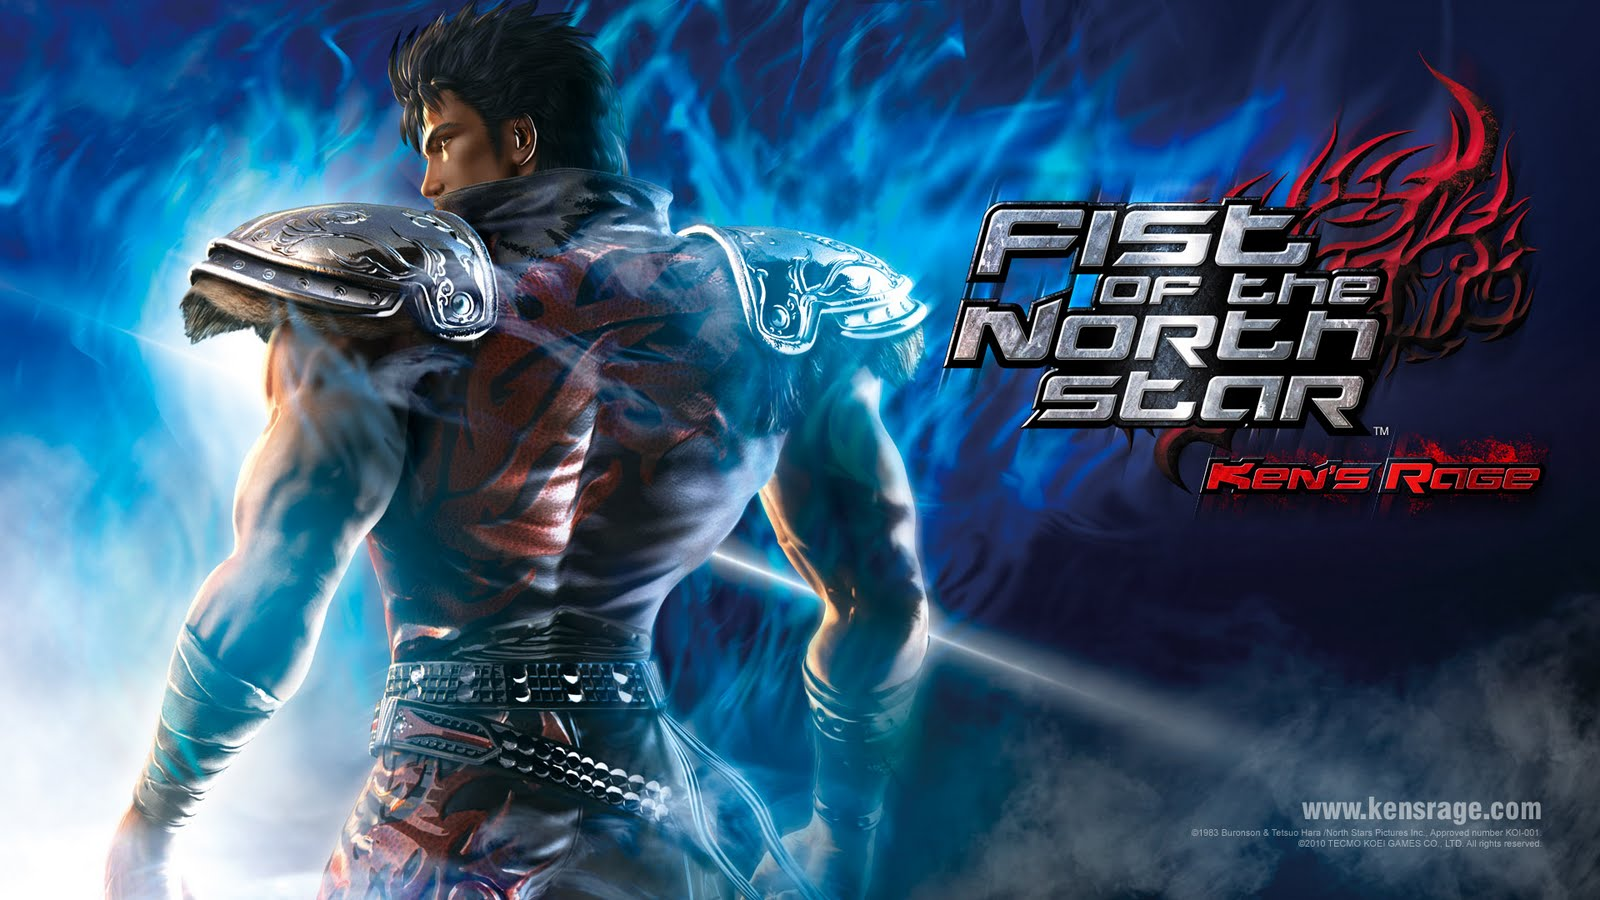 The Daily Zombies Fist Of The North Star Kens Rage Wallpaper 1600x900